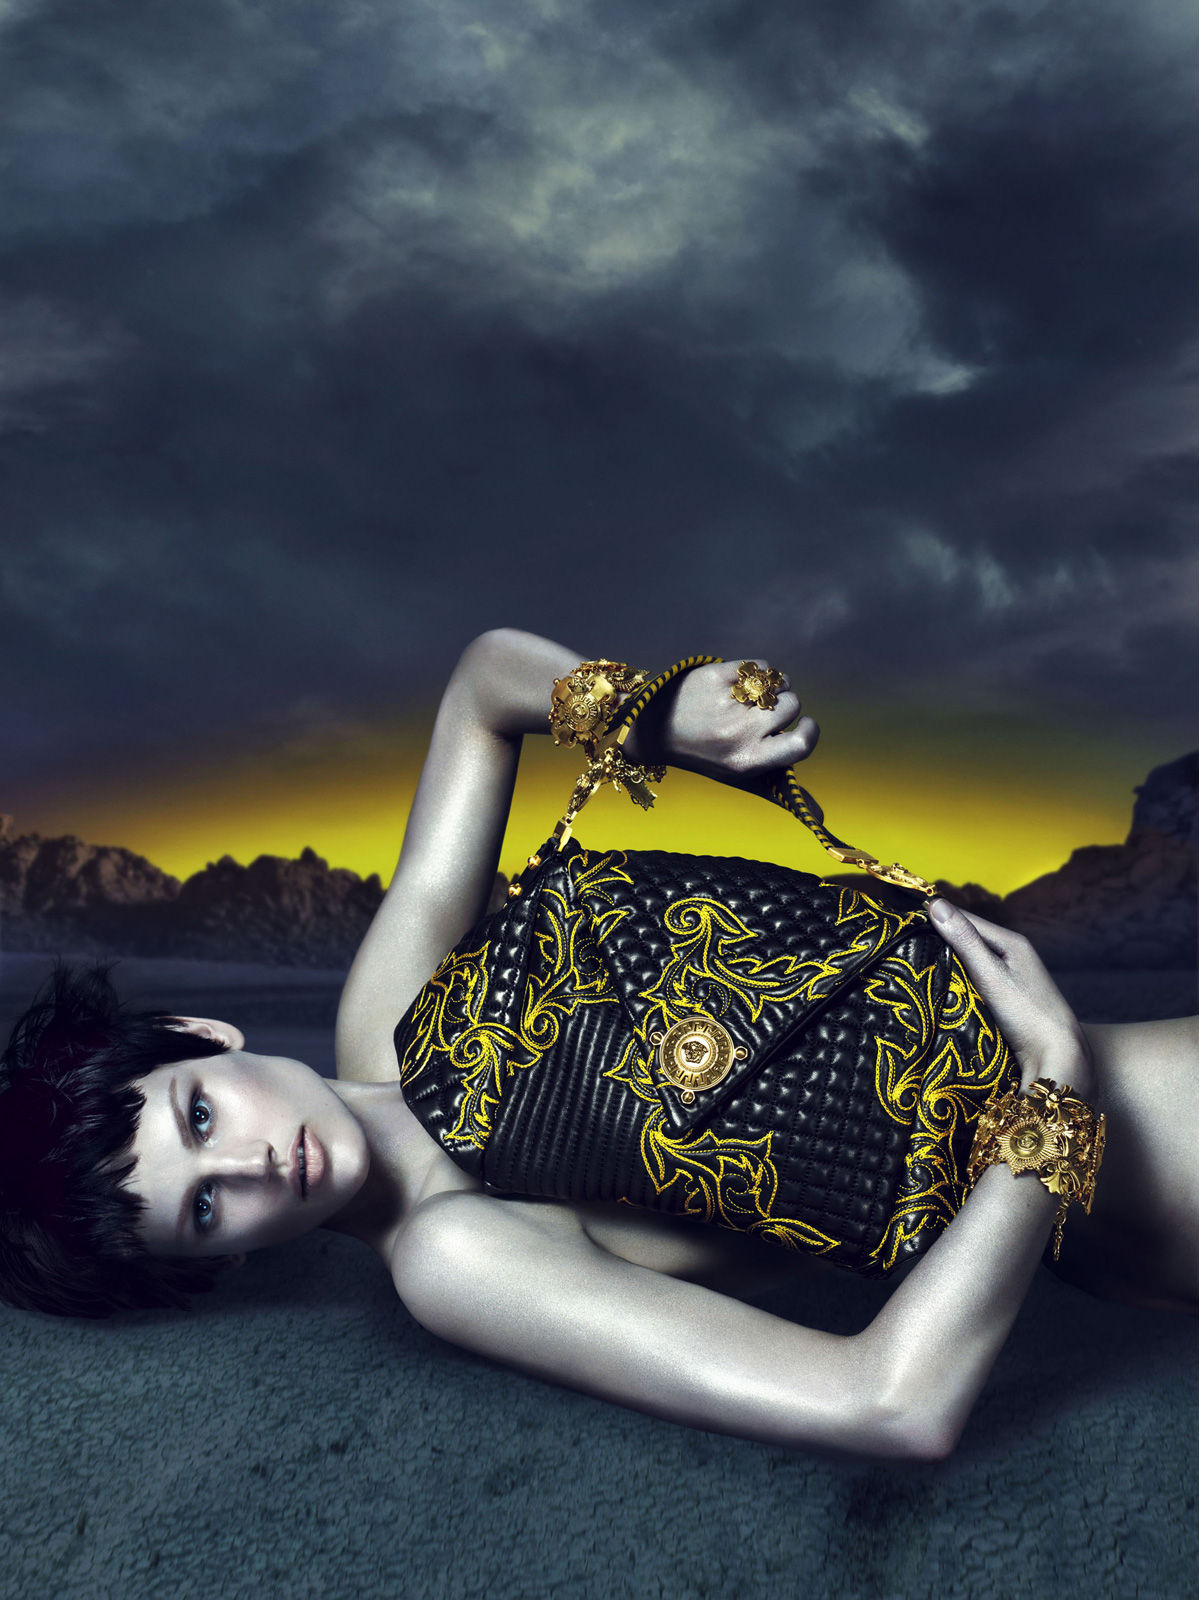 Art8amby S Blog: Versace Fall Winter 2011 Ad Campaign